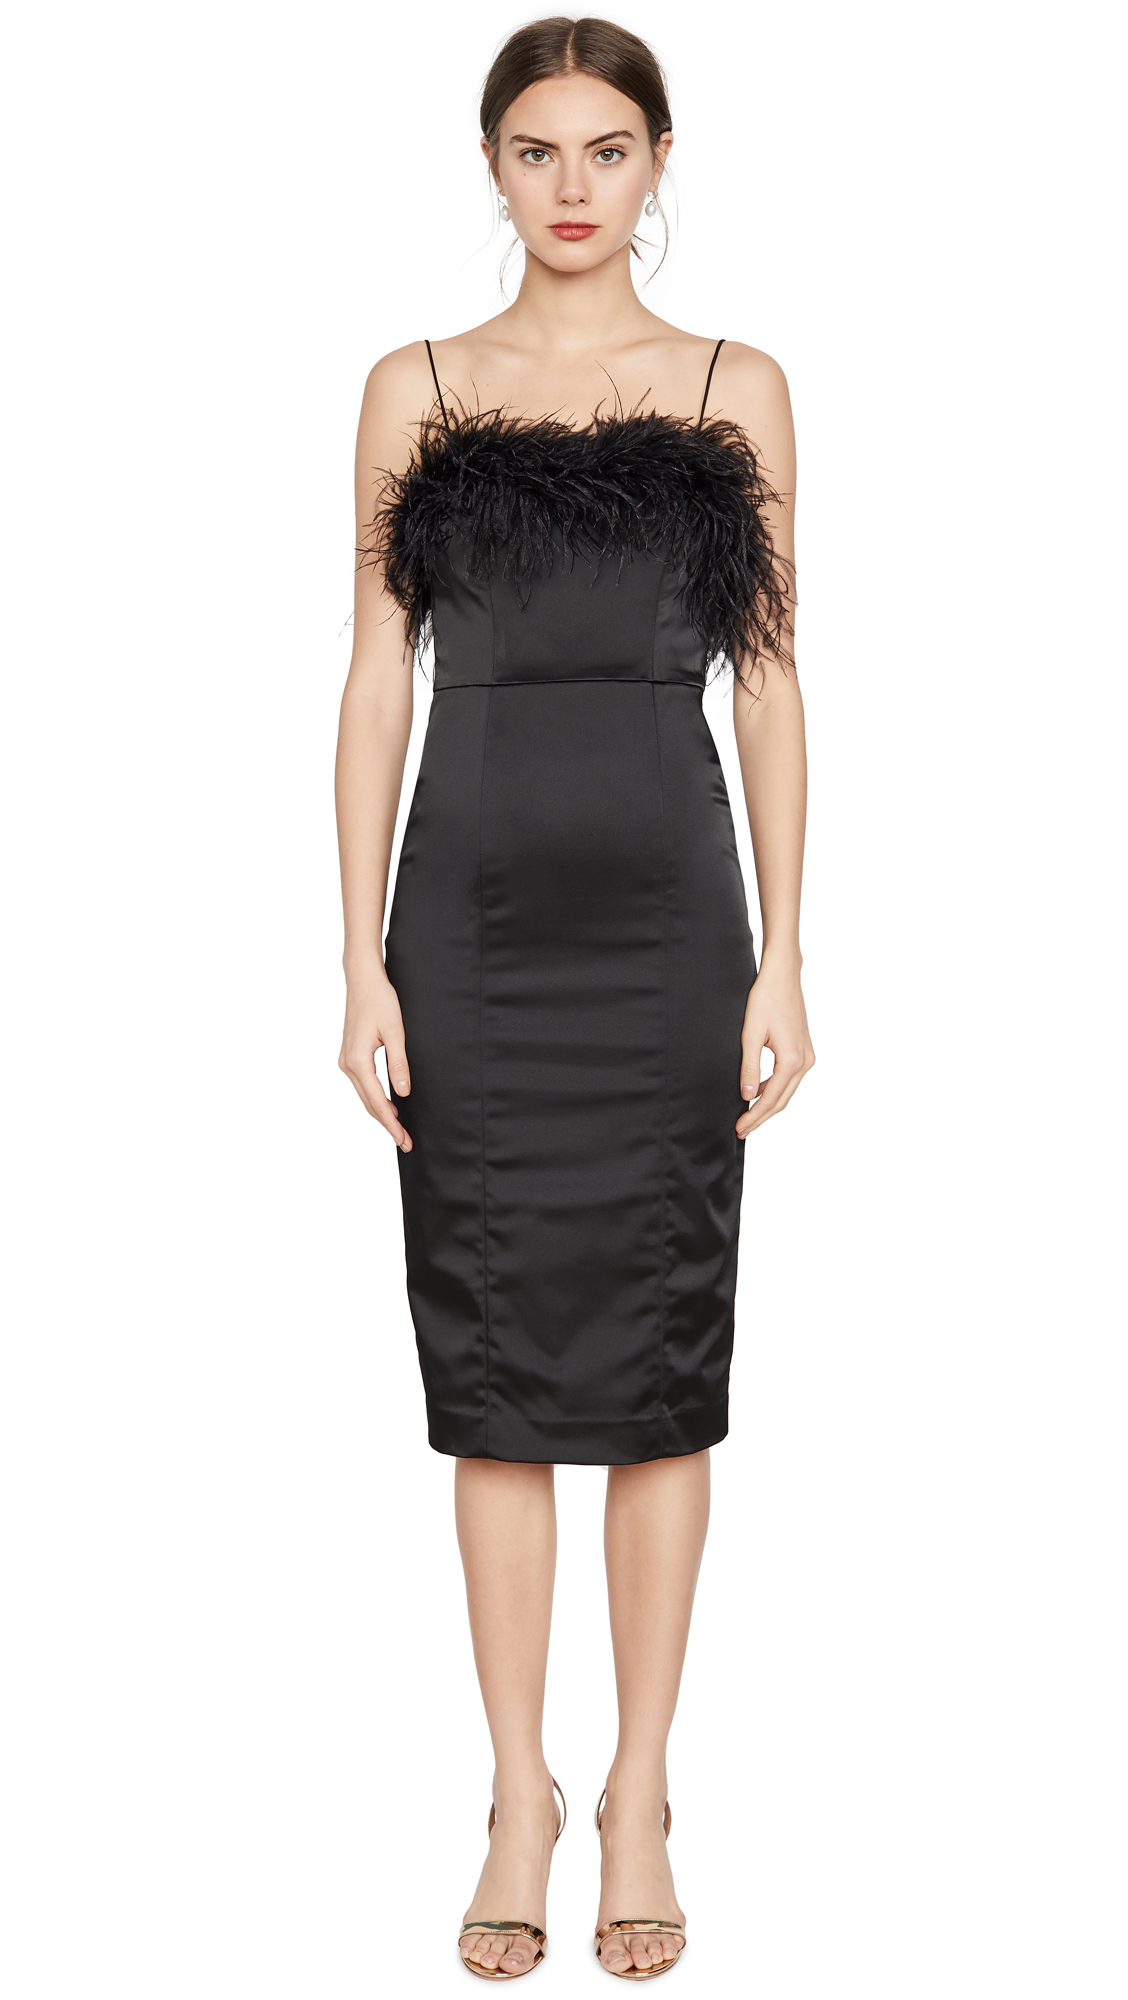 Veronica Beard Lilya Dress - 60% Off Sale